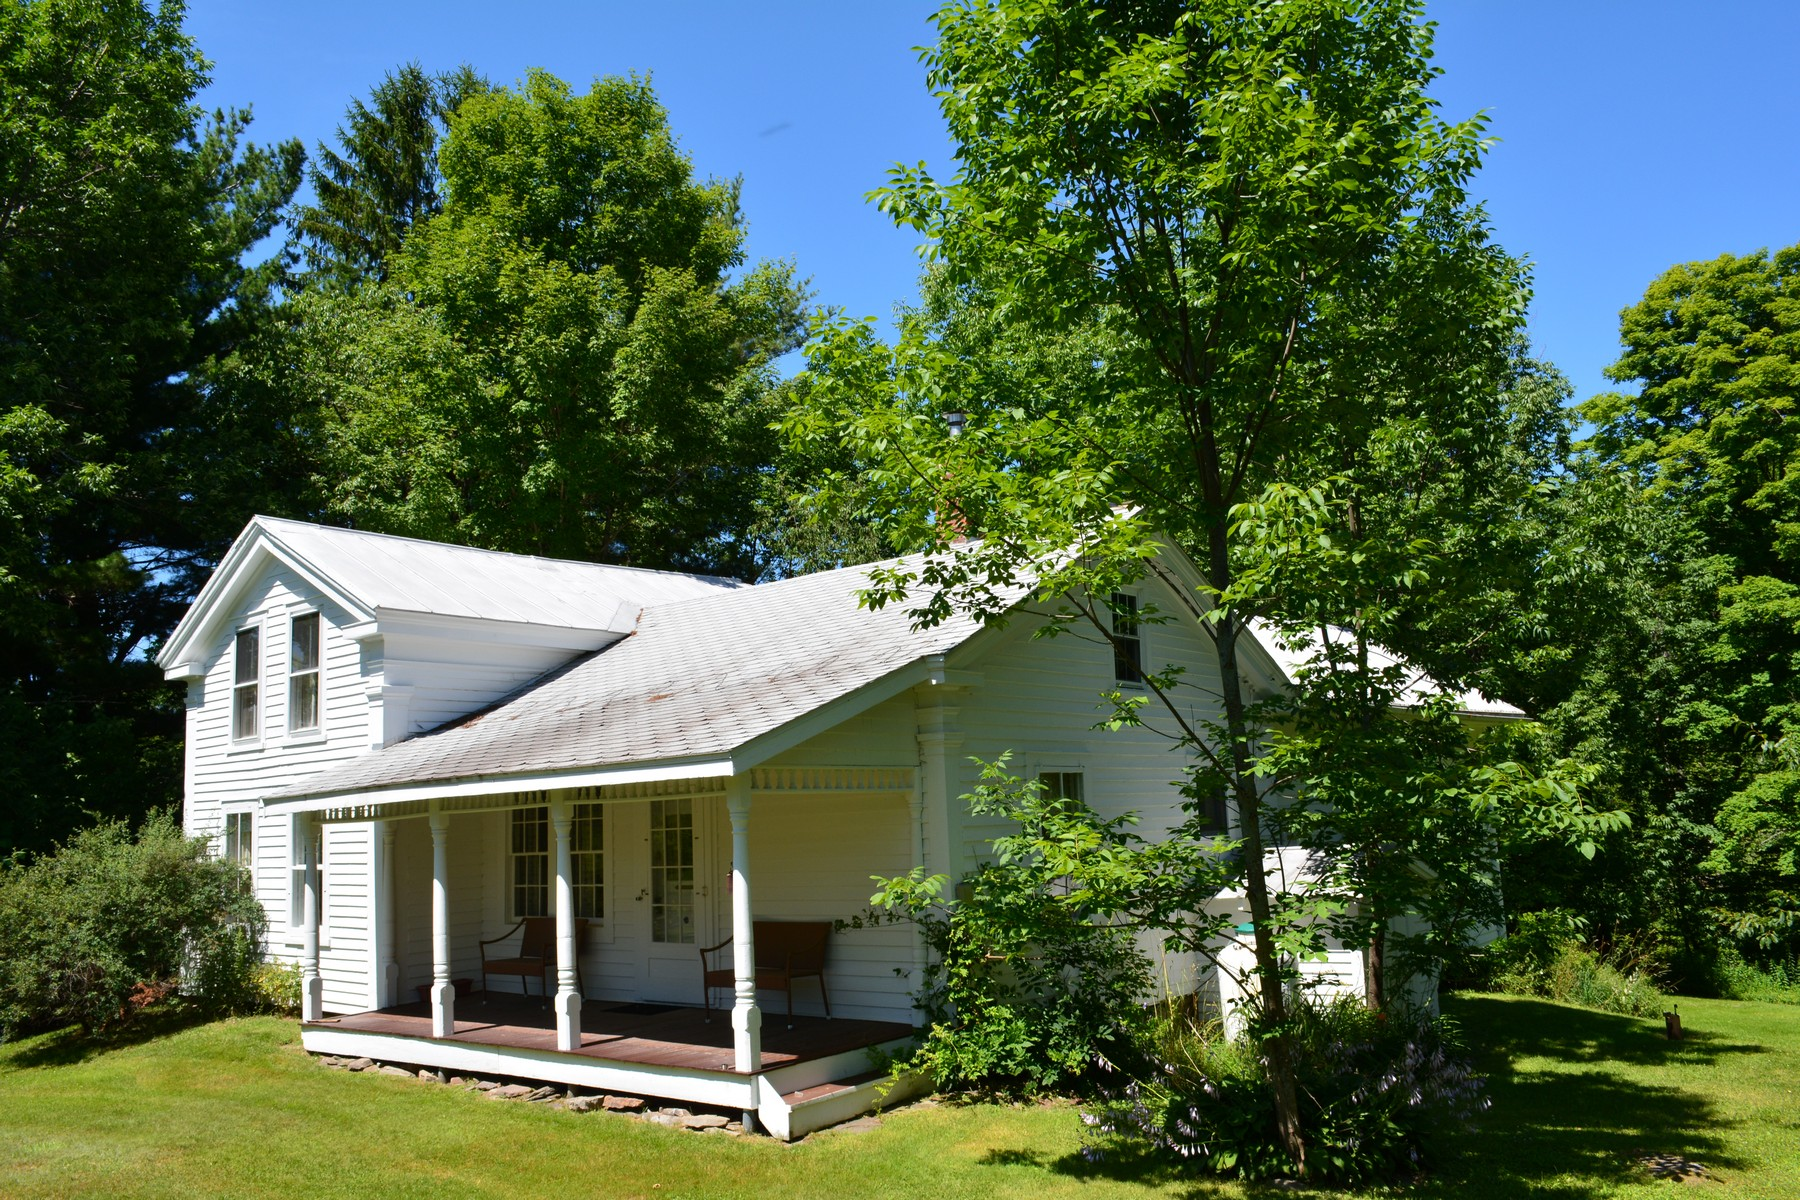 Maison unifamiliale pour l Vente à Classic Farmhouse with Land 6774 Cr23/walton-sidney Rd Sidney Center, New York 13839 États-Unis